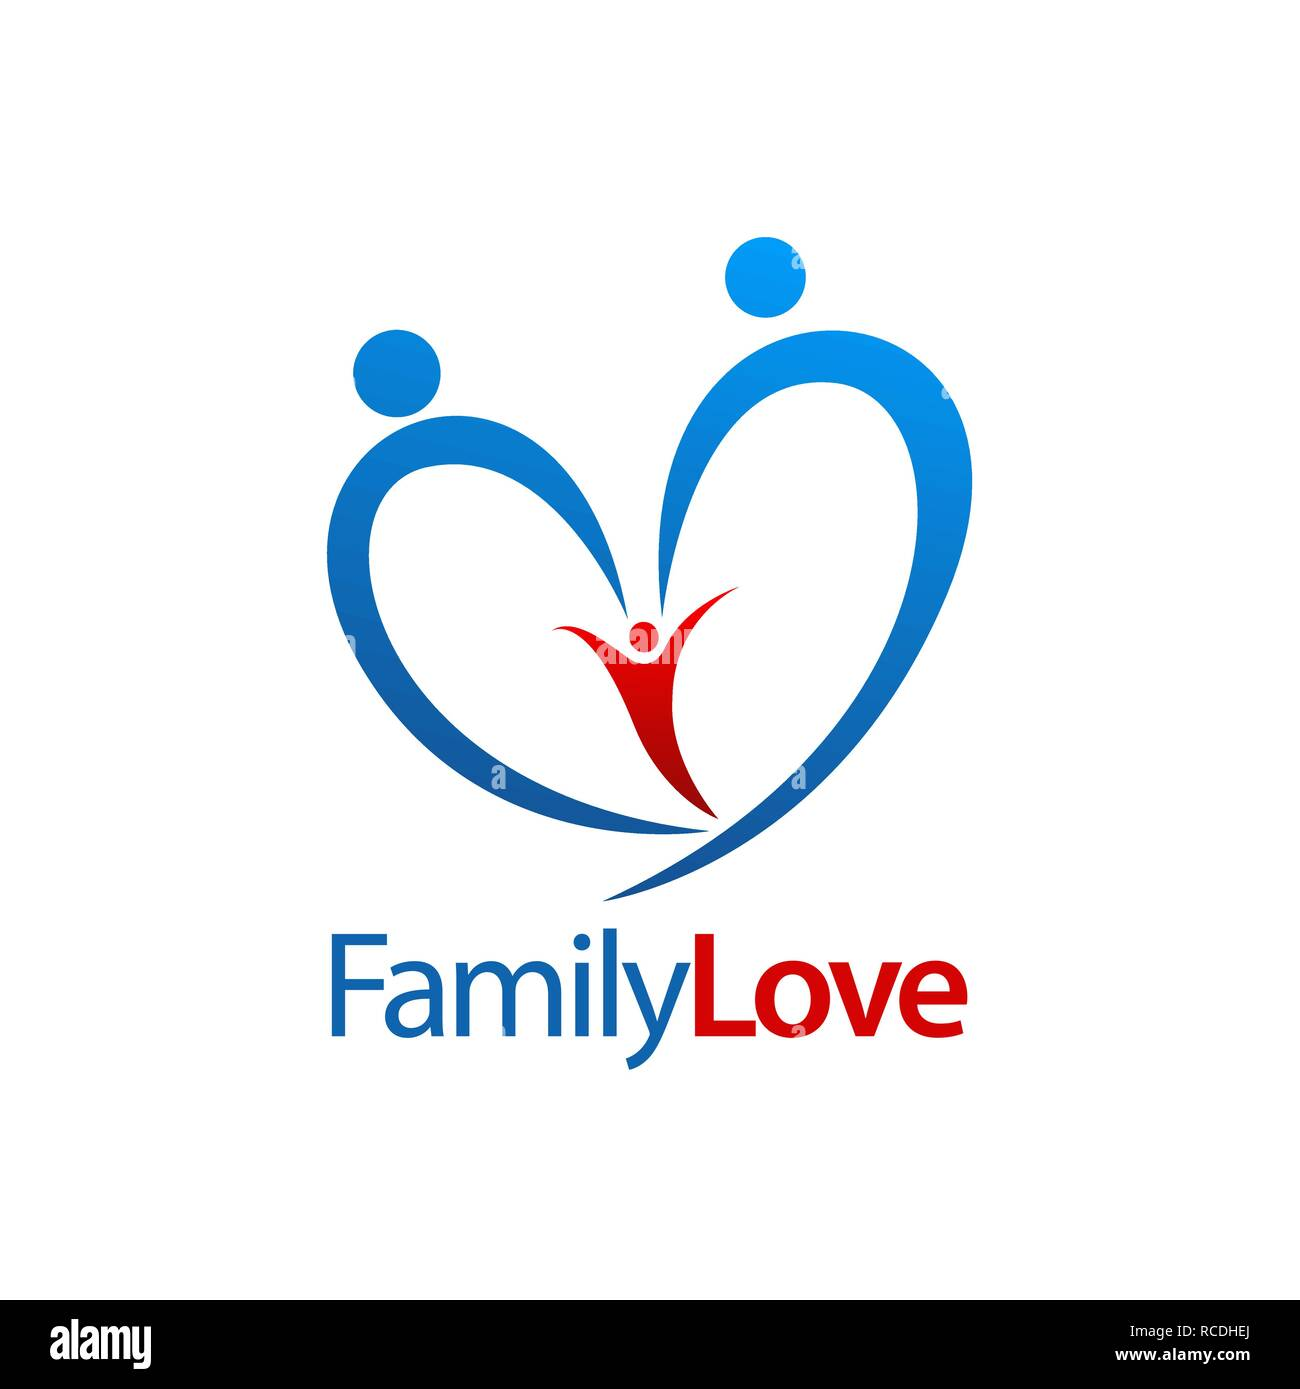 Three human family love logo concept design. Symbol graphic template element vector - Stock Vector